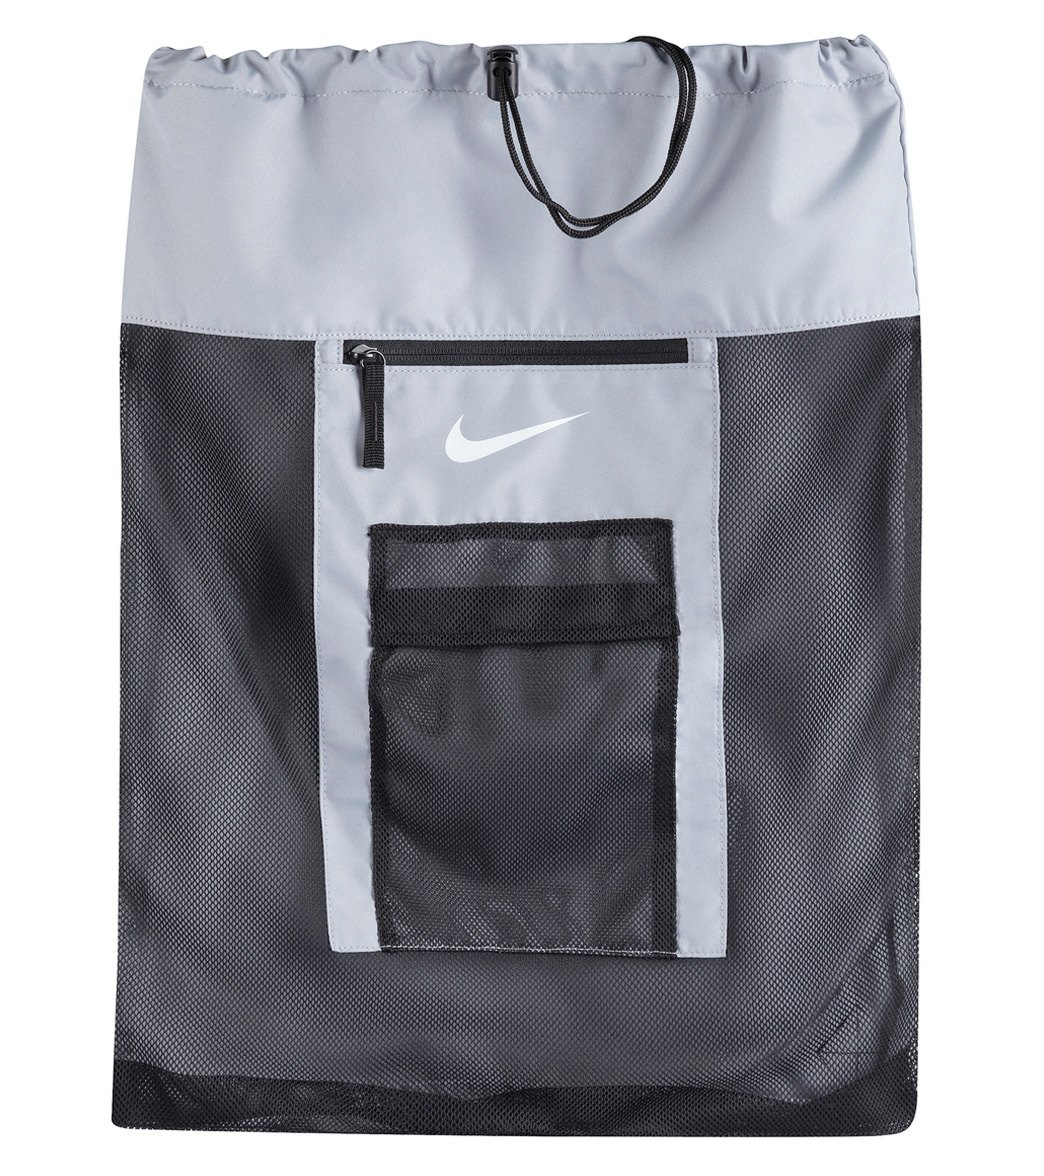 Nike Deck Bag II at SwimOutlet.com f2185f46d0c17